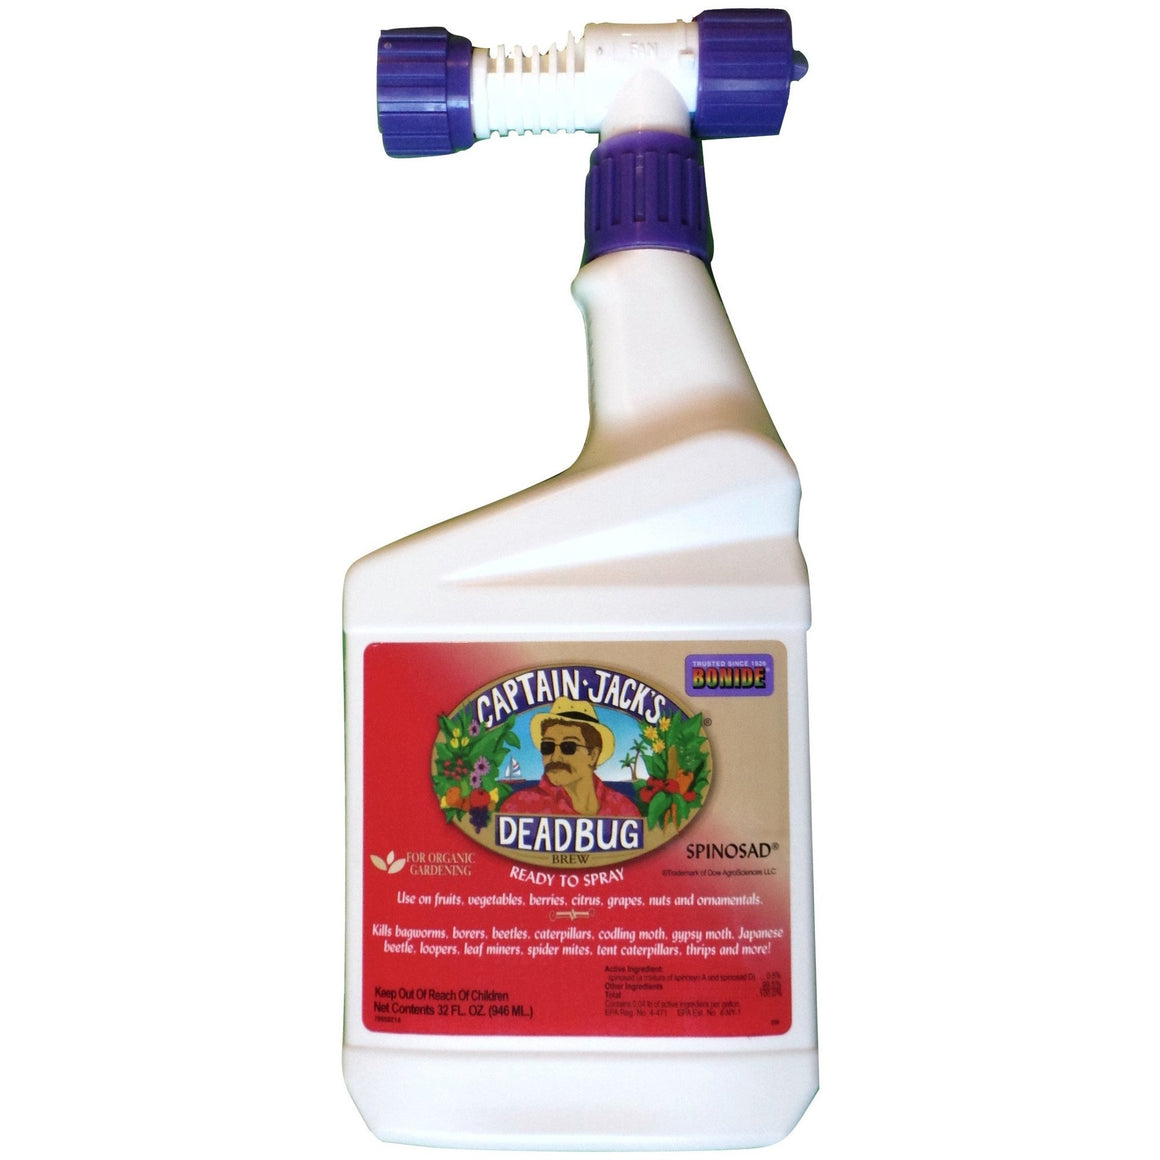 Bonide Captain Jack's Dead Bug RTS Spray Spinosad - 1 Quart